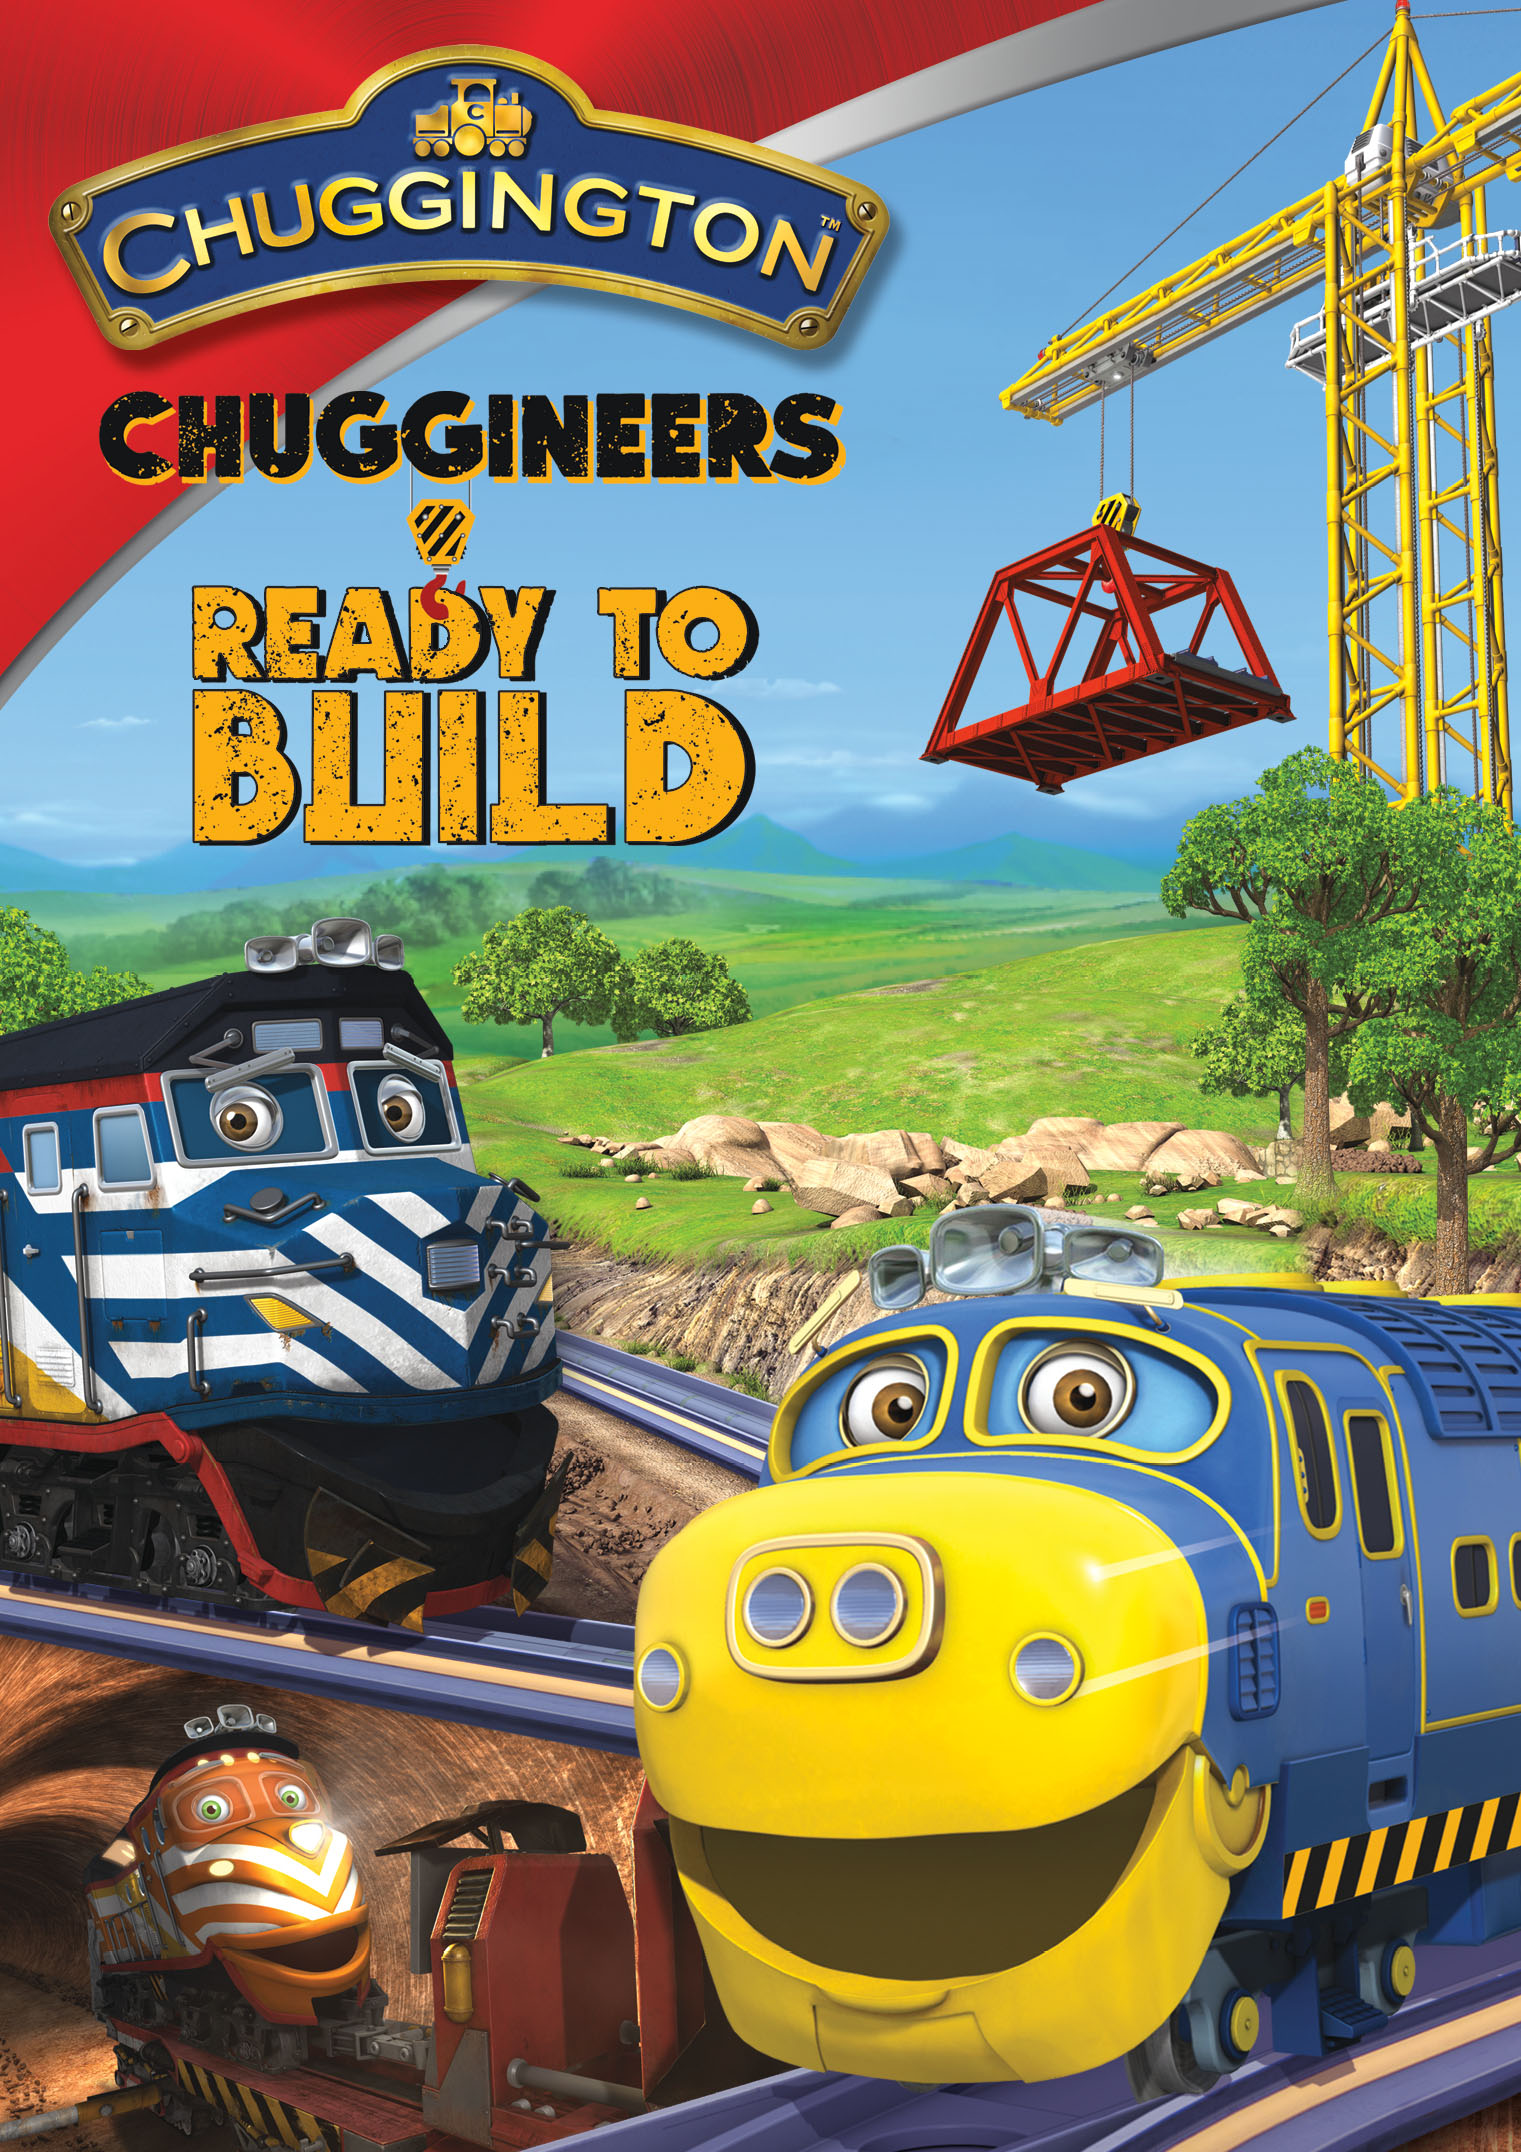 Chuggington Chuggineers Ready to Build DVD Teaches Responsibility! {#Giveaway}